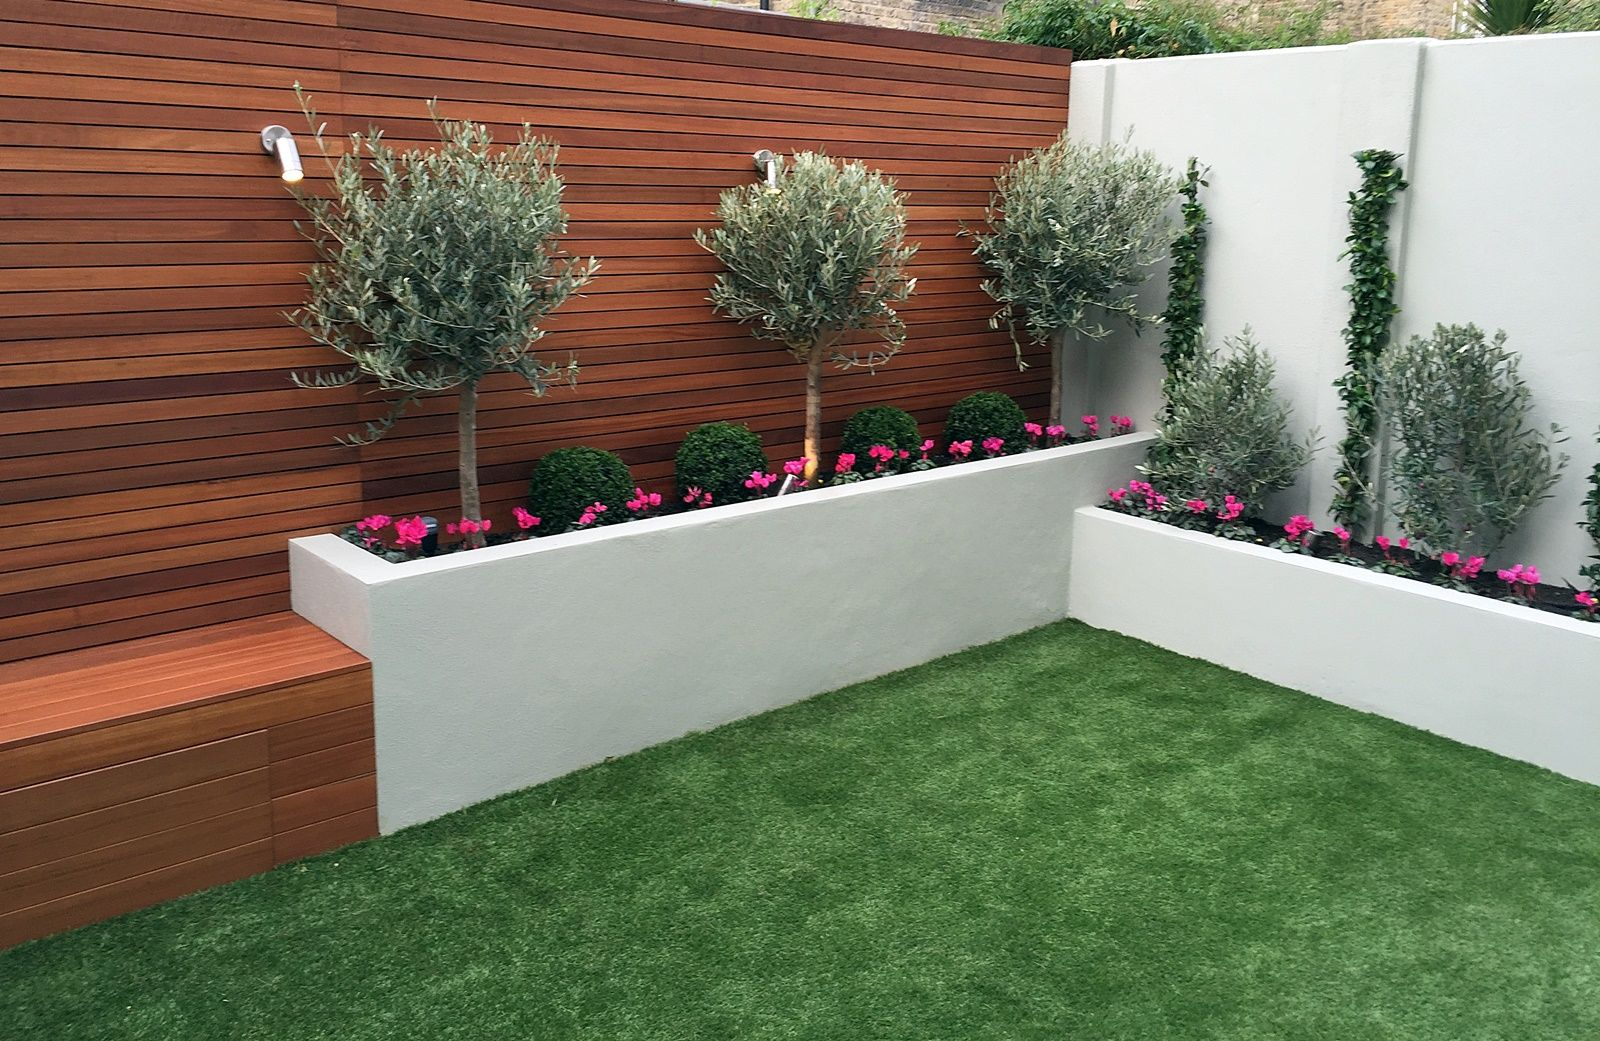 Modern Garden Design Low Maintenance Scheme Fake Grass Easi Easy Lawn  Hardwood Bench Raised Concrete Walls Part 46